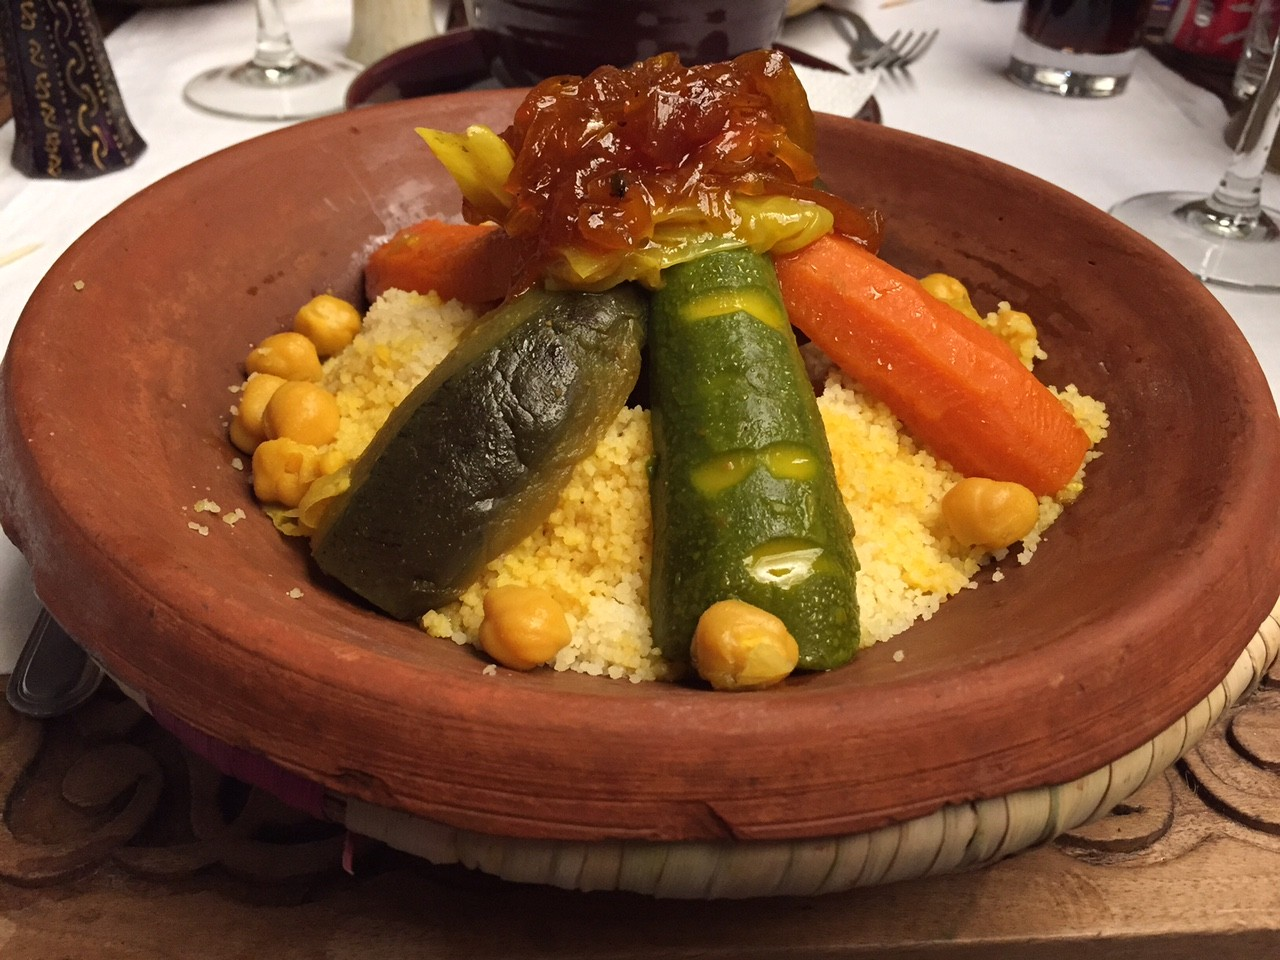 Culinaire reis door de straten van Marrakech